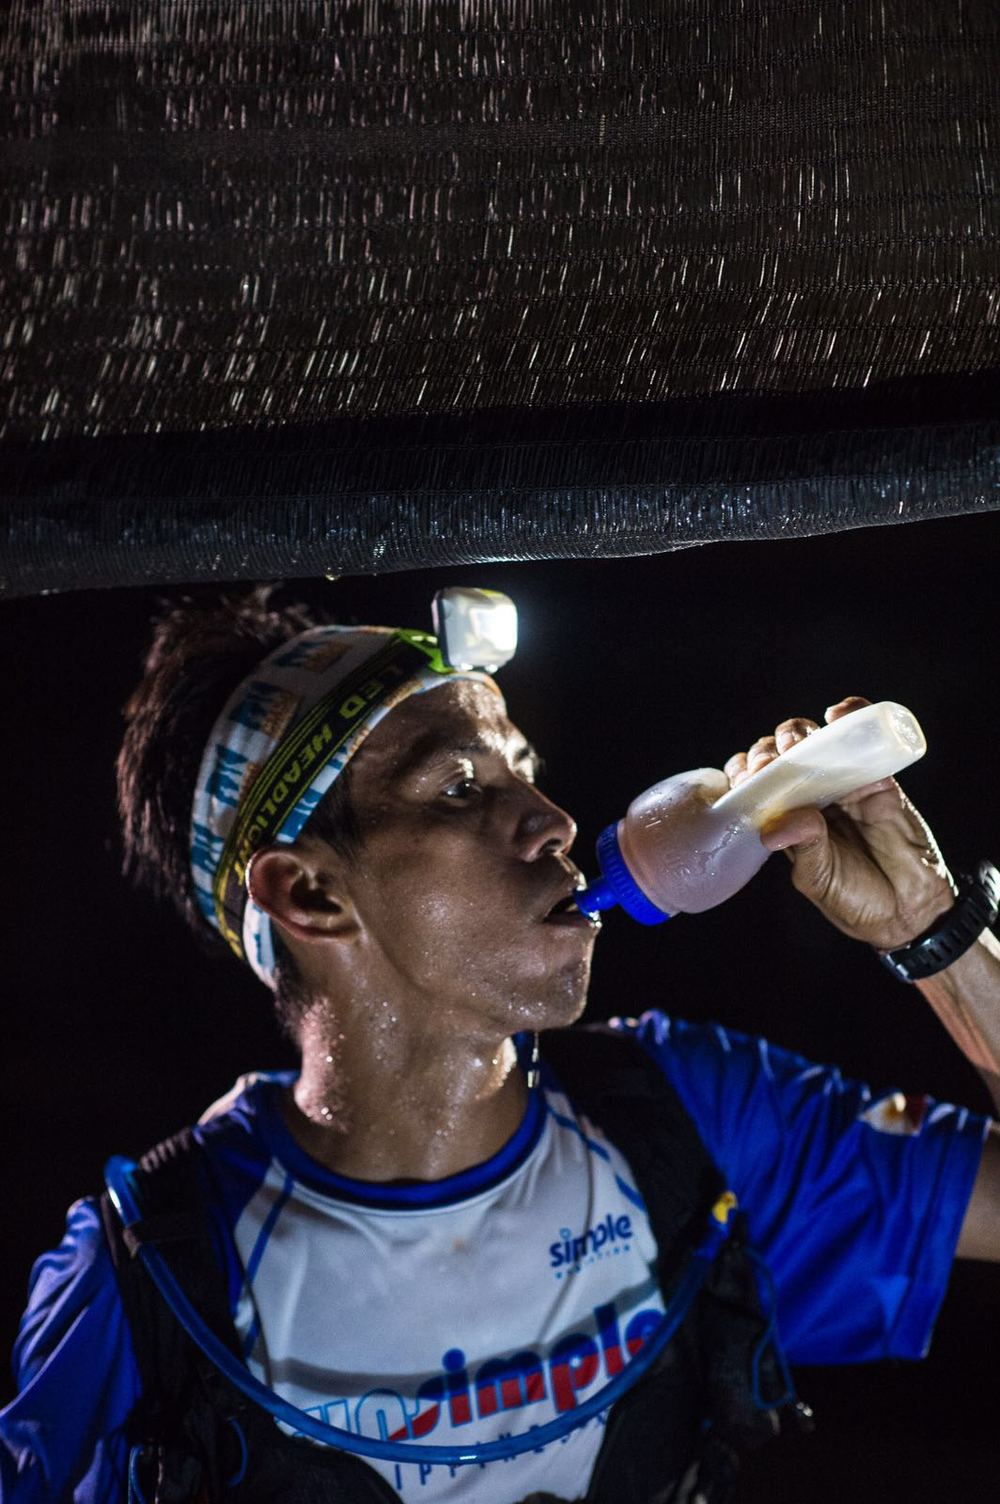 Manolito Divina: simple hydration was very important in Malaysia last weekend